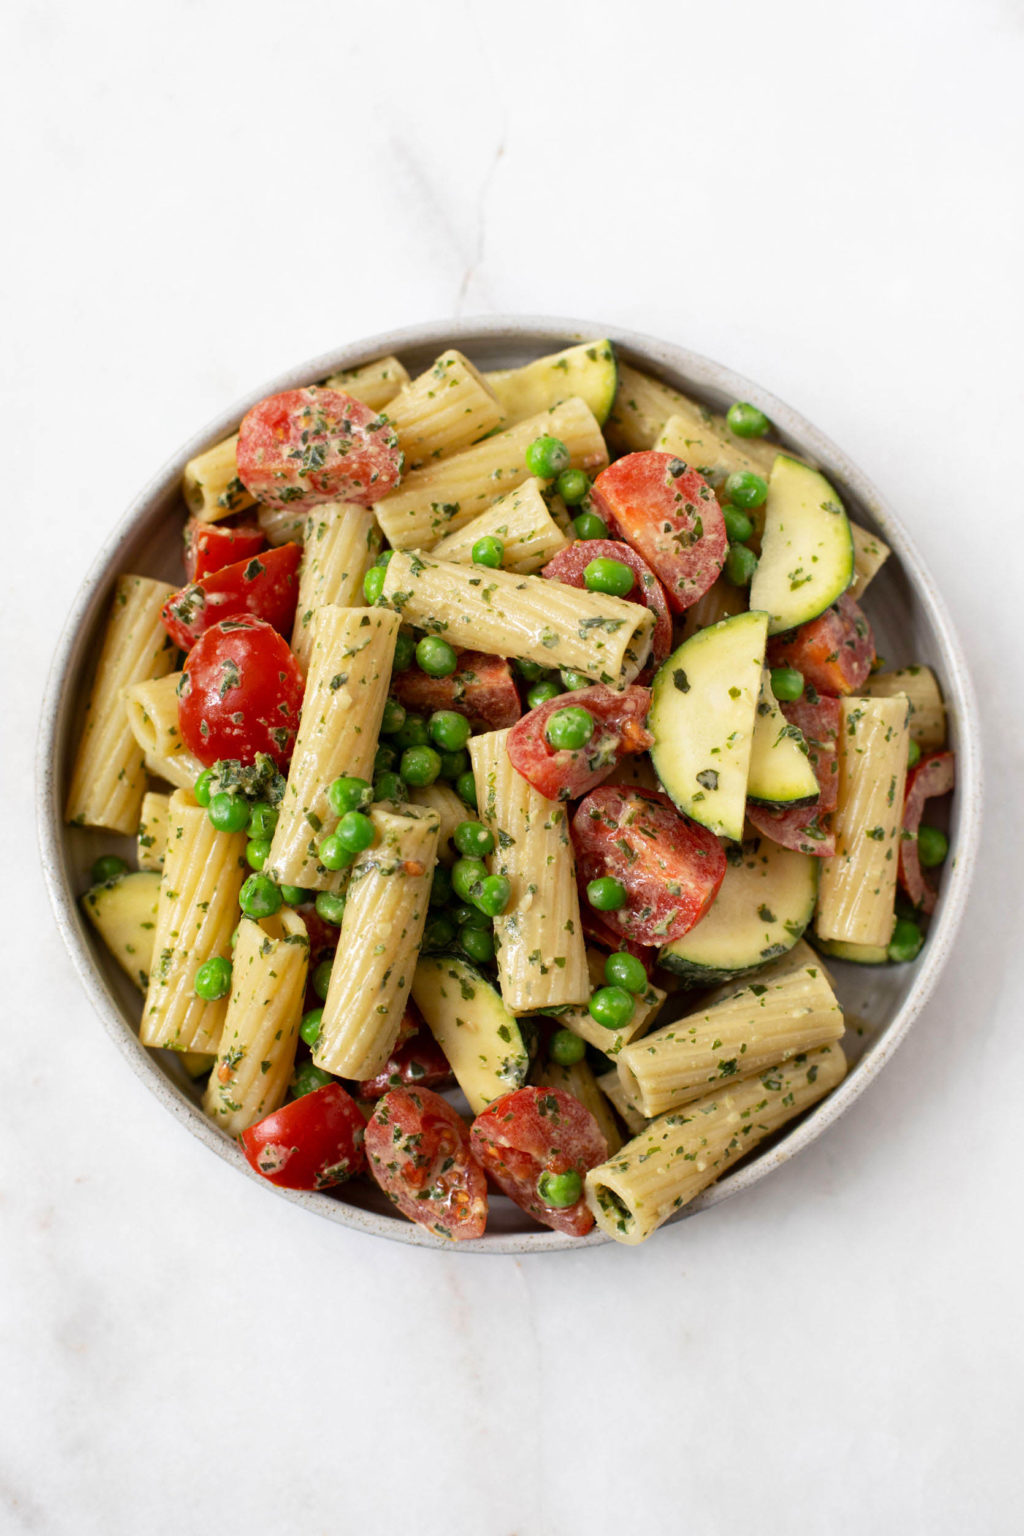 A round, white bowl holds a pasta salad that's made with a tahini base. The pasta salad is full of cherry tomatoes and peas.